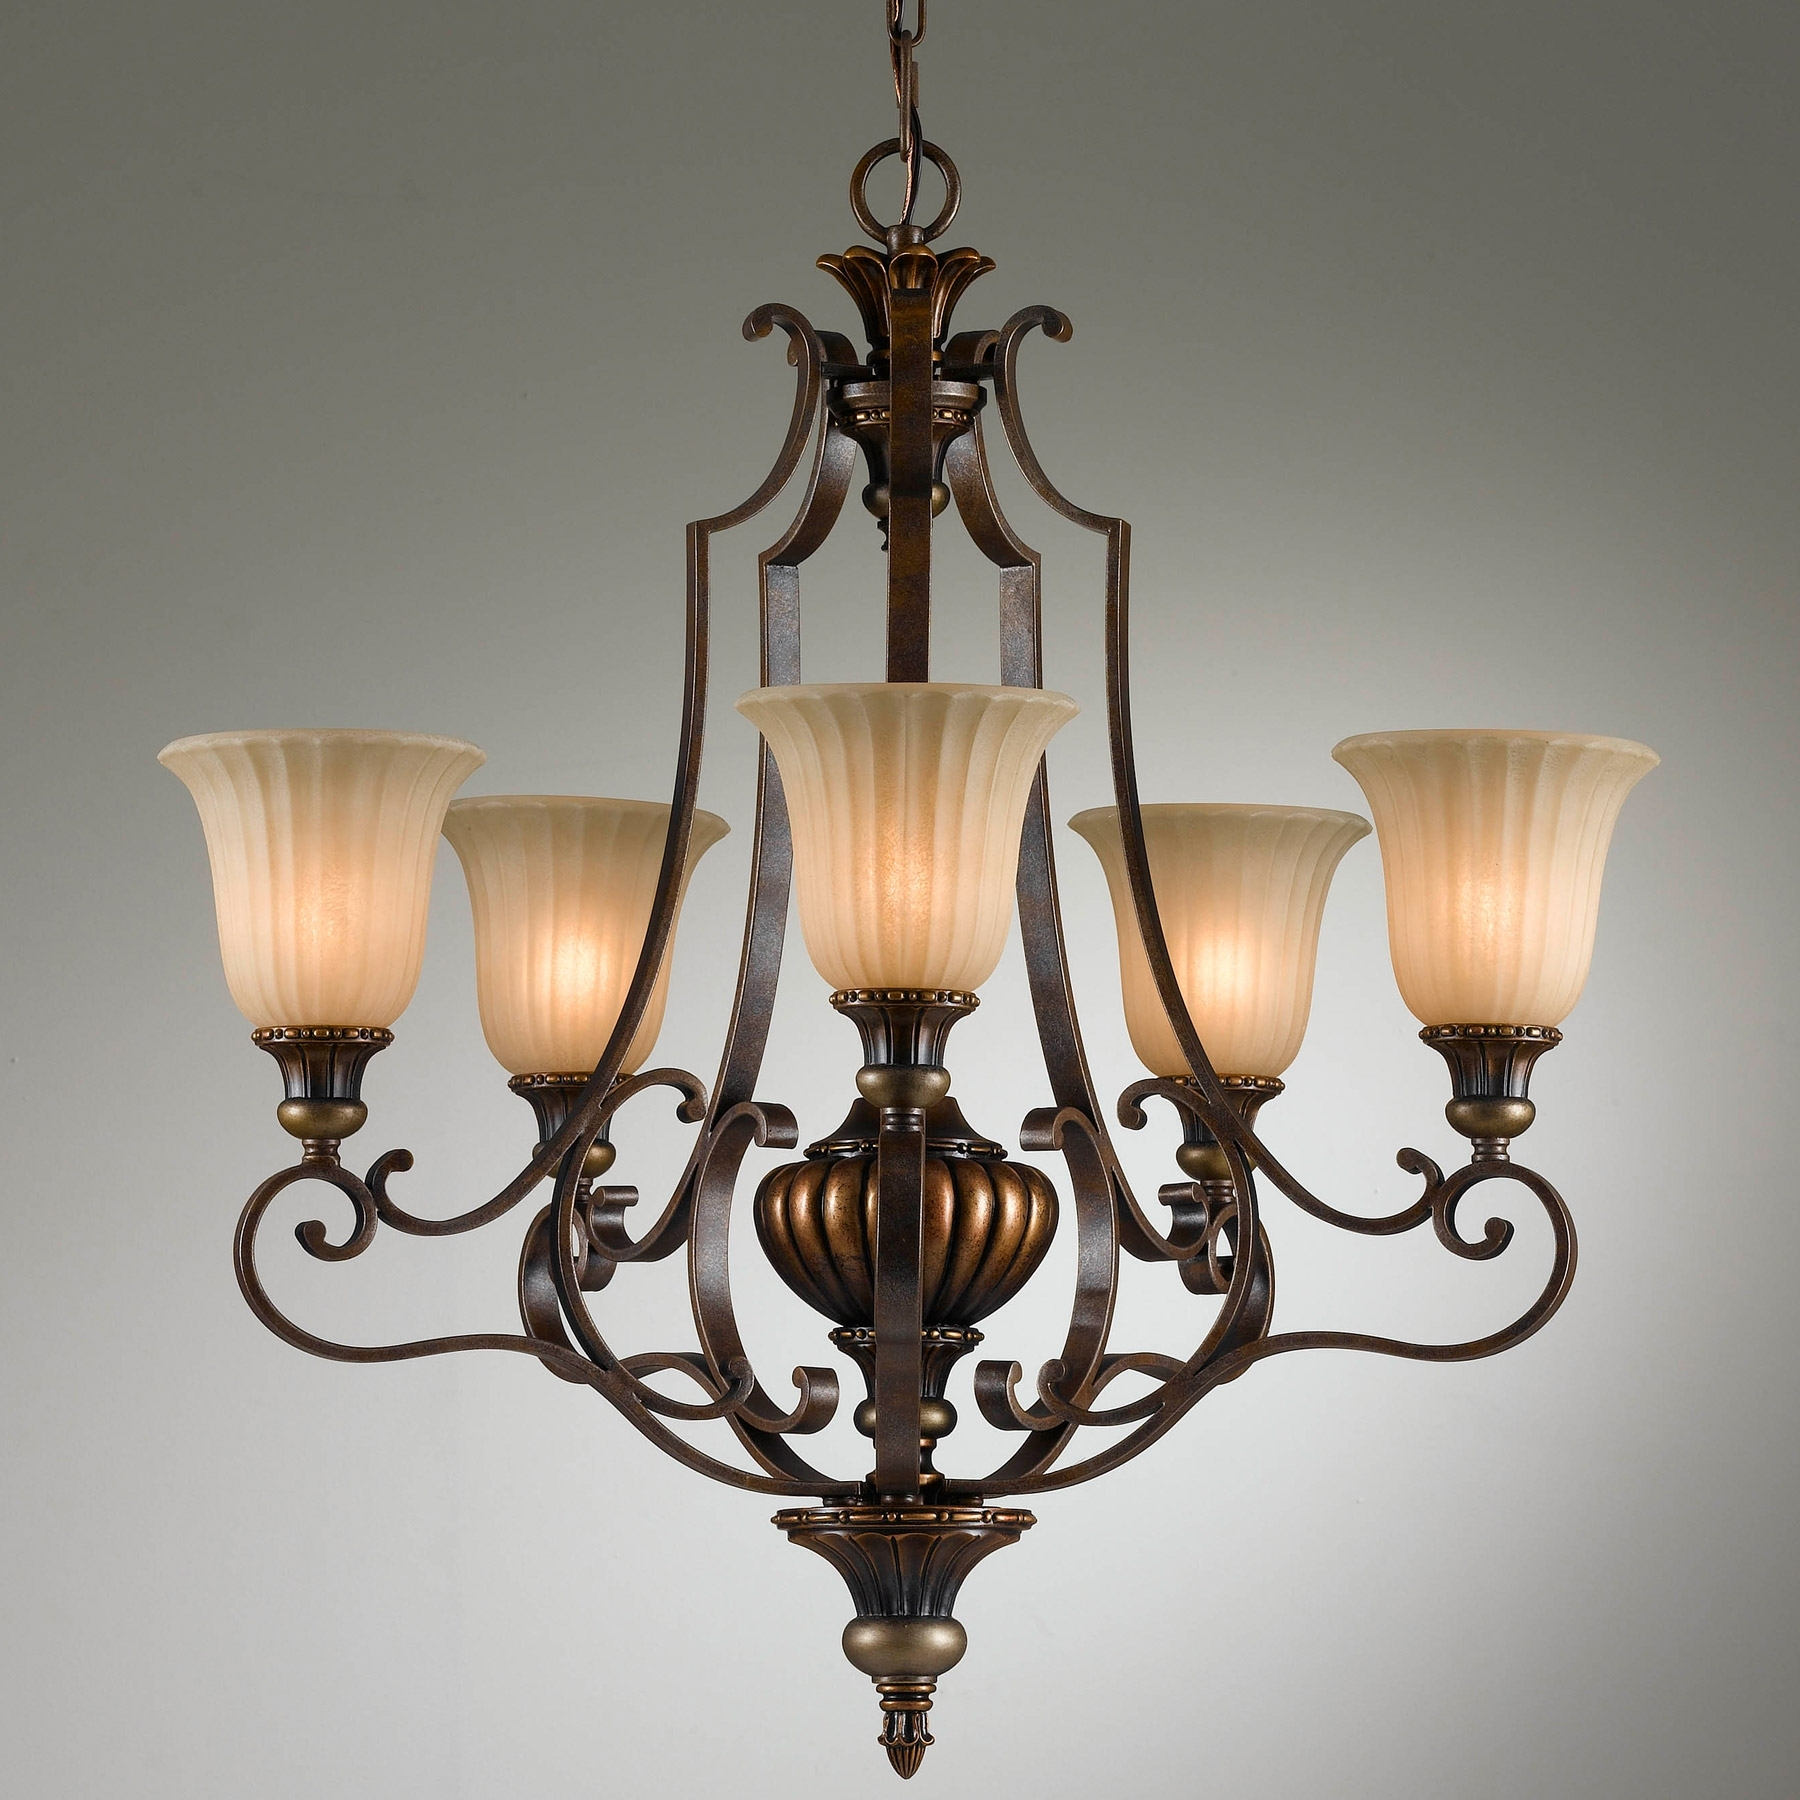 Favorite Chandelier: Outstanding Feiss Chandeliers Decorative Chandelier No Intended For Feiss Chandeliers (View 9 of 15)